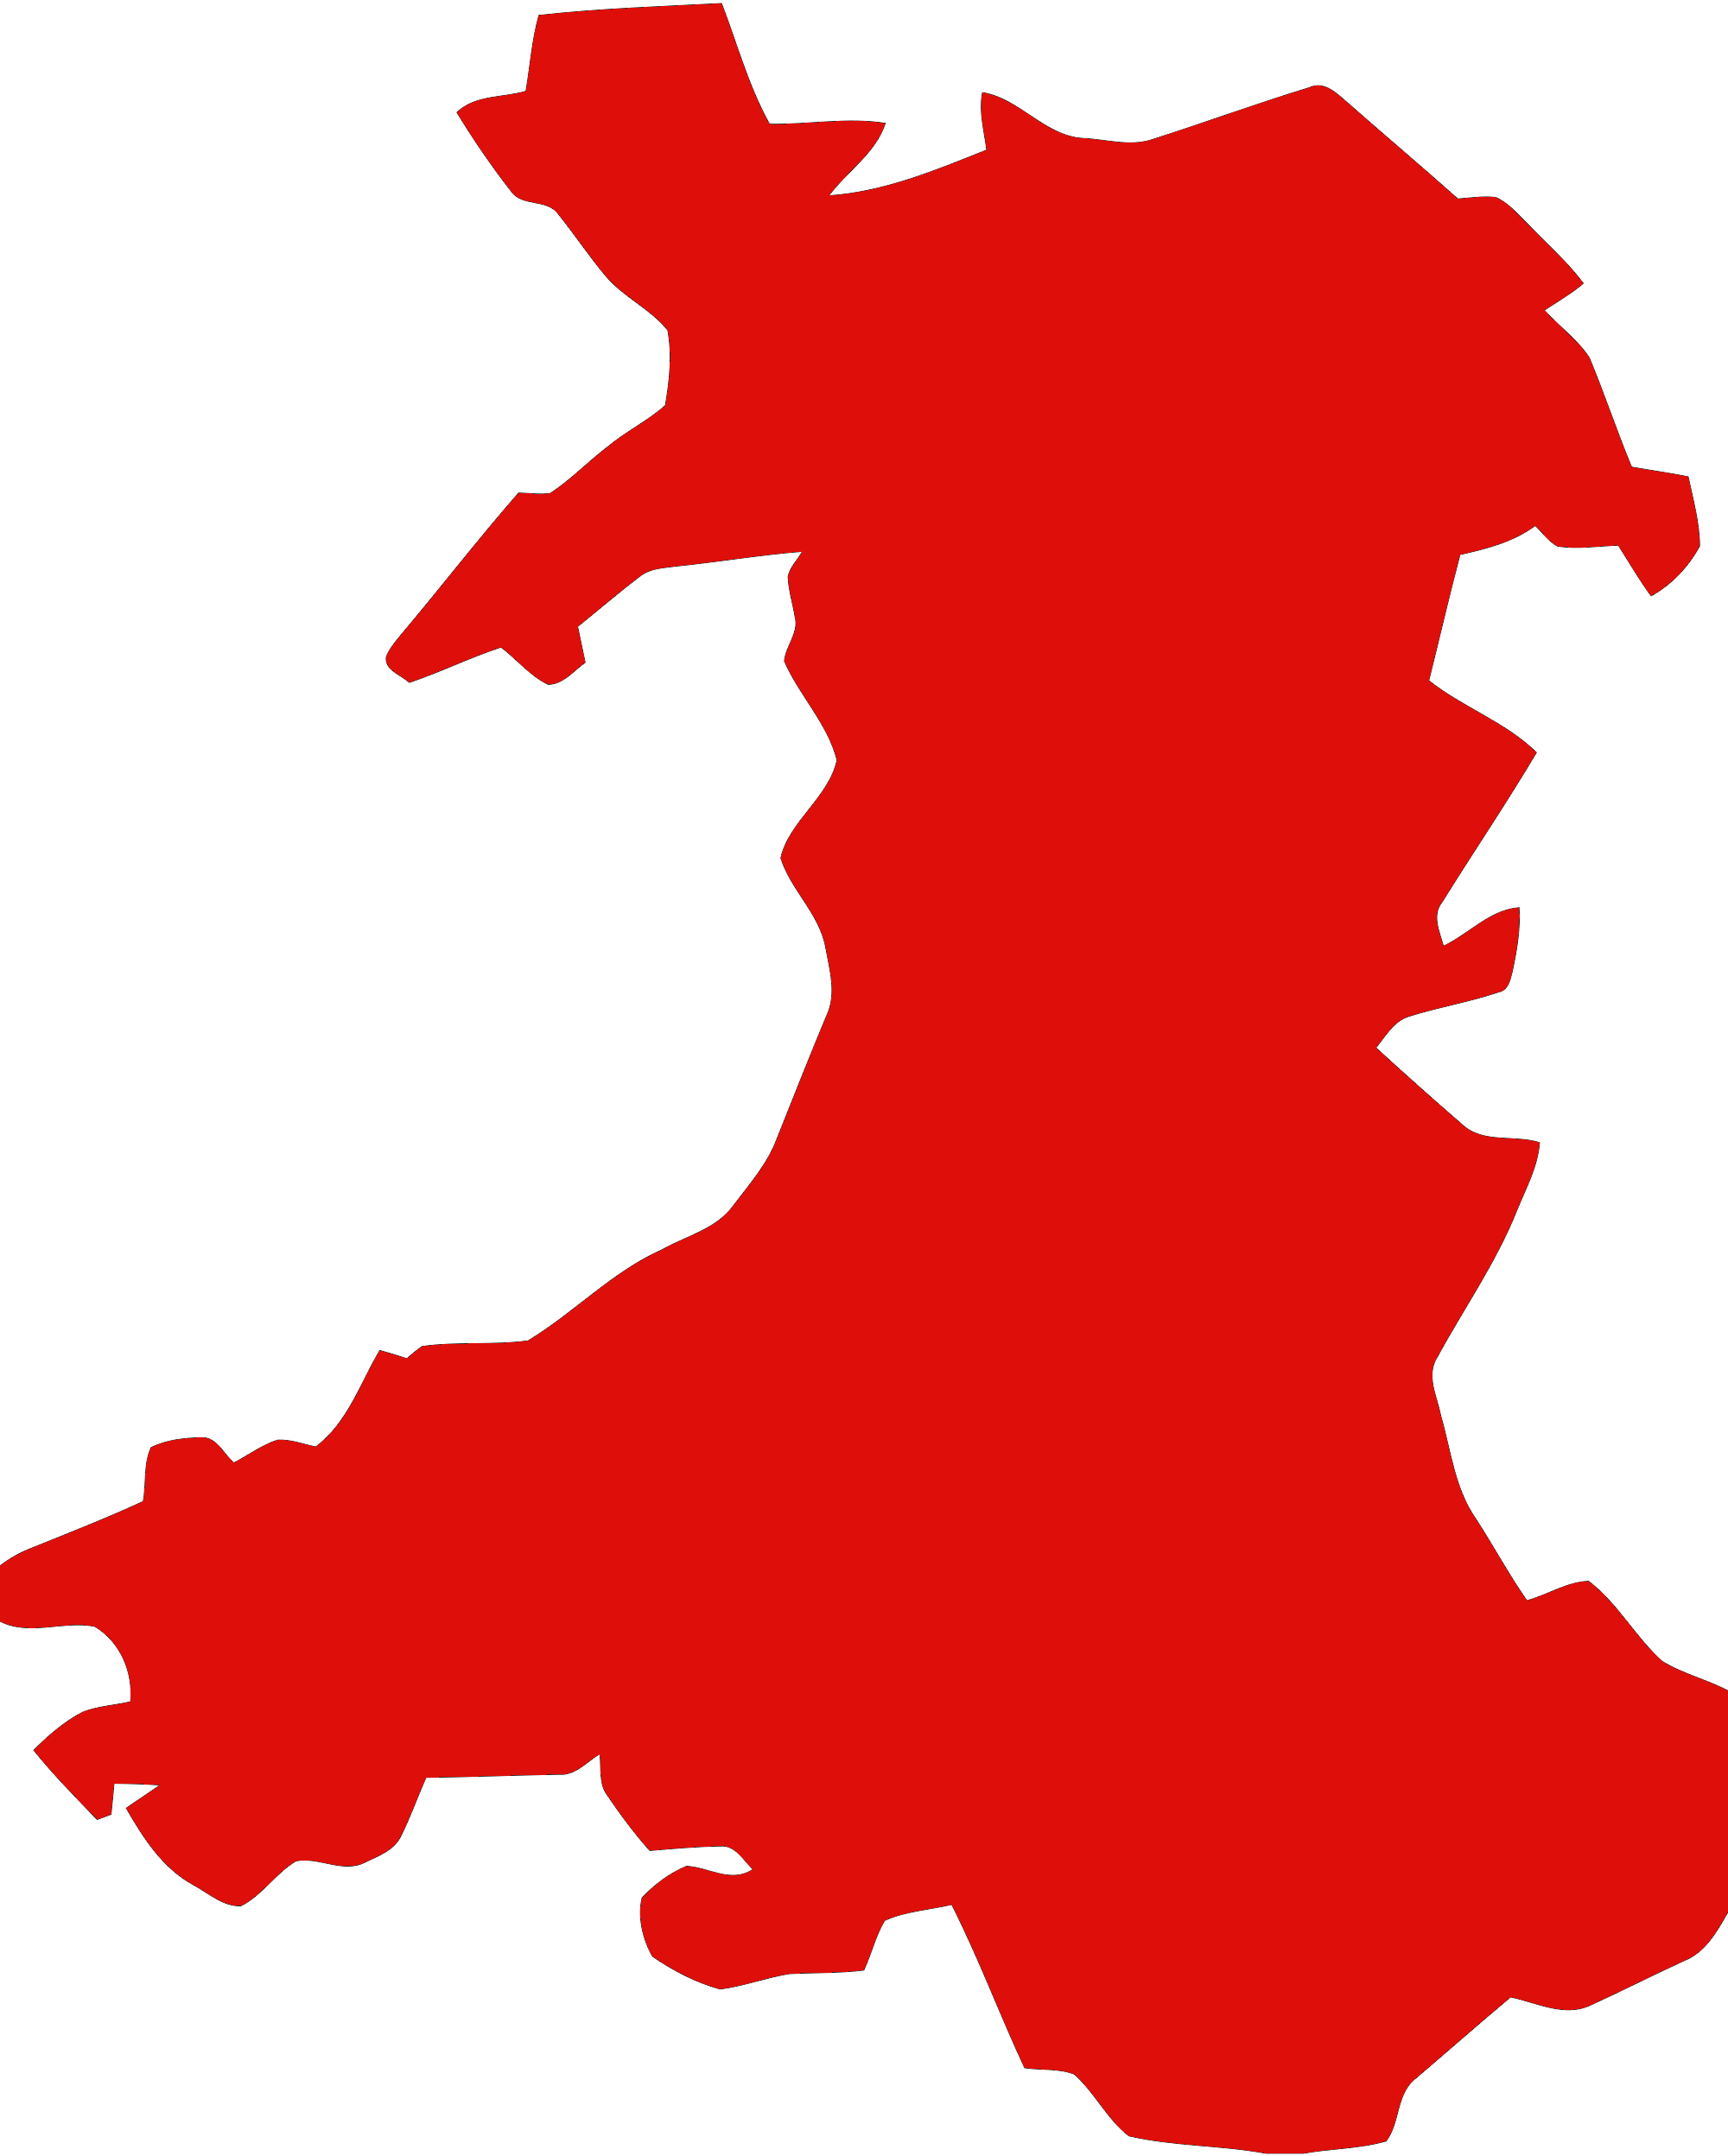 File:Wales in Red.png.